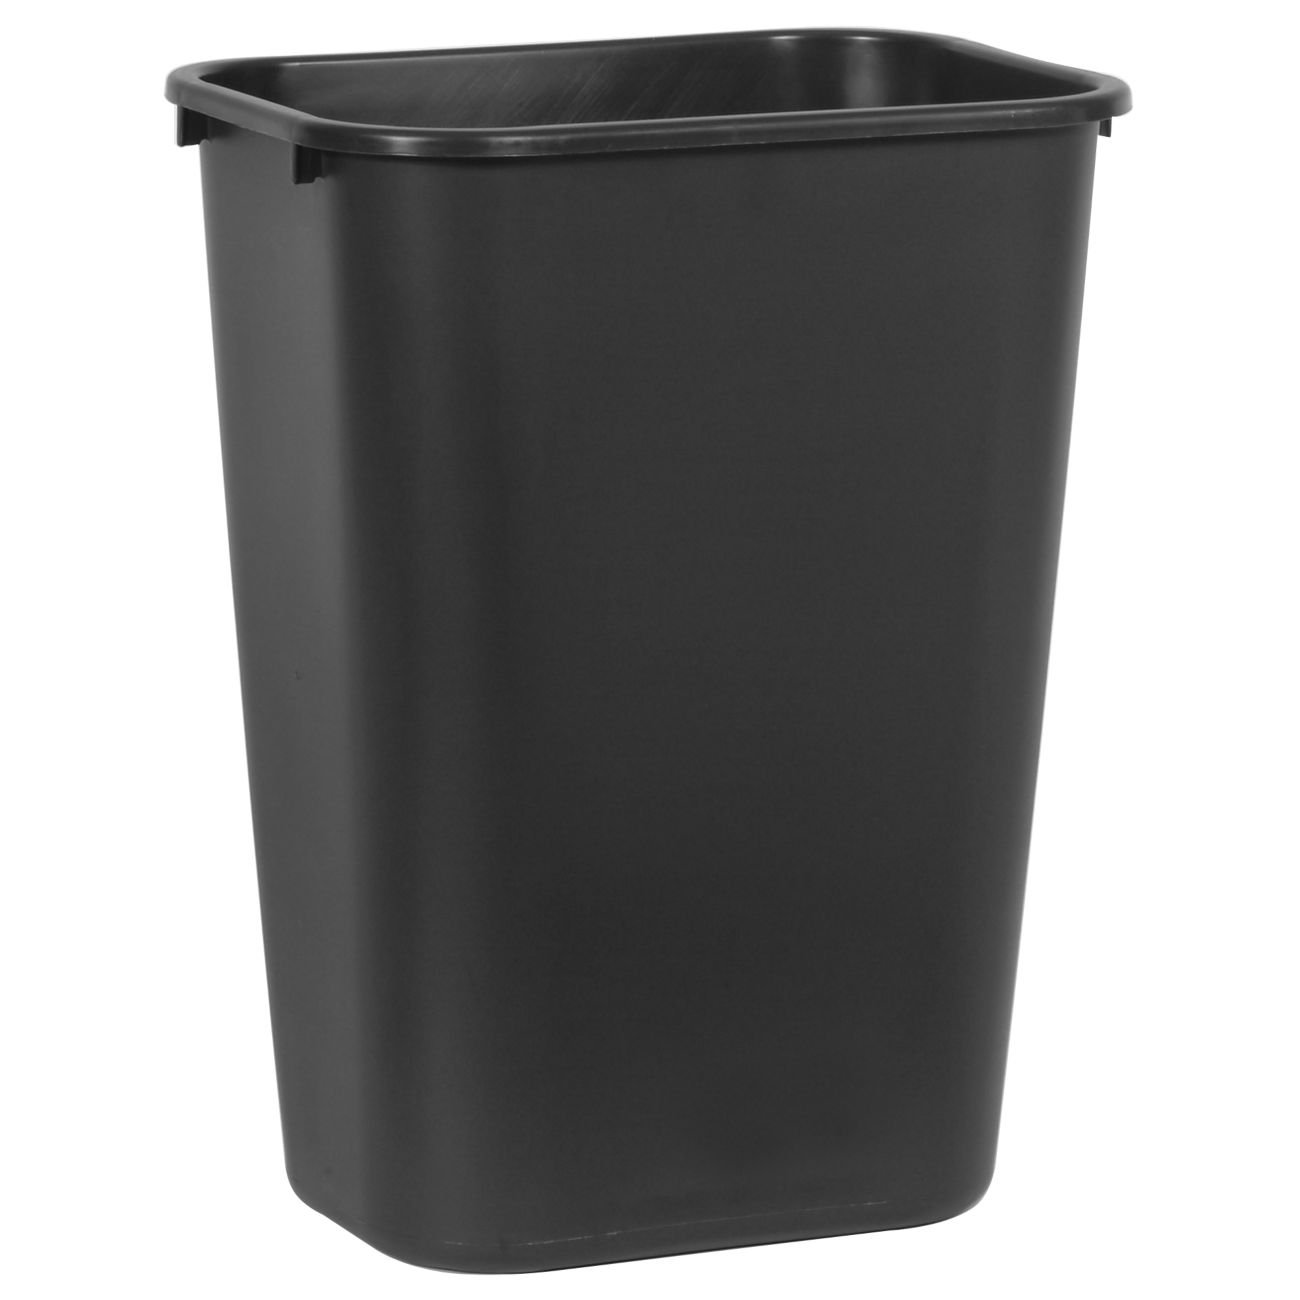 RUBBERMAID COMMERCIAL PRODUCTS Rubbermaid Commercial Soft Molded Plastic 10.25-Gallon Trash Can, Rectangular, Black at Sears.com